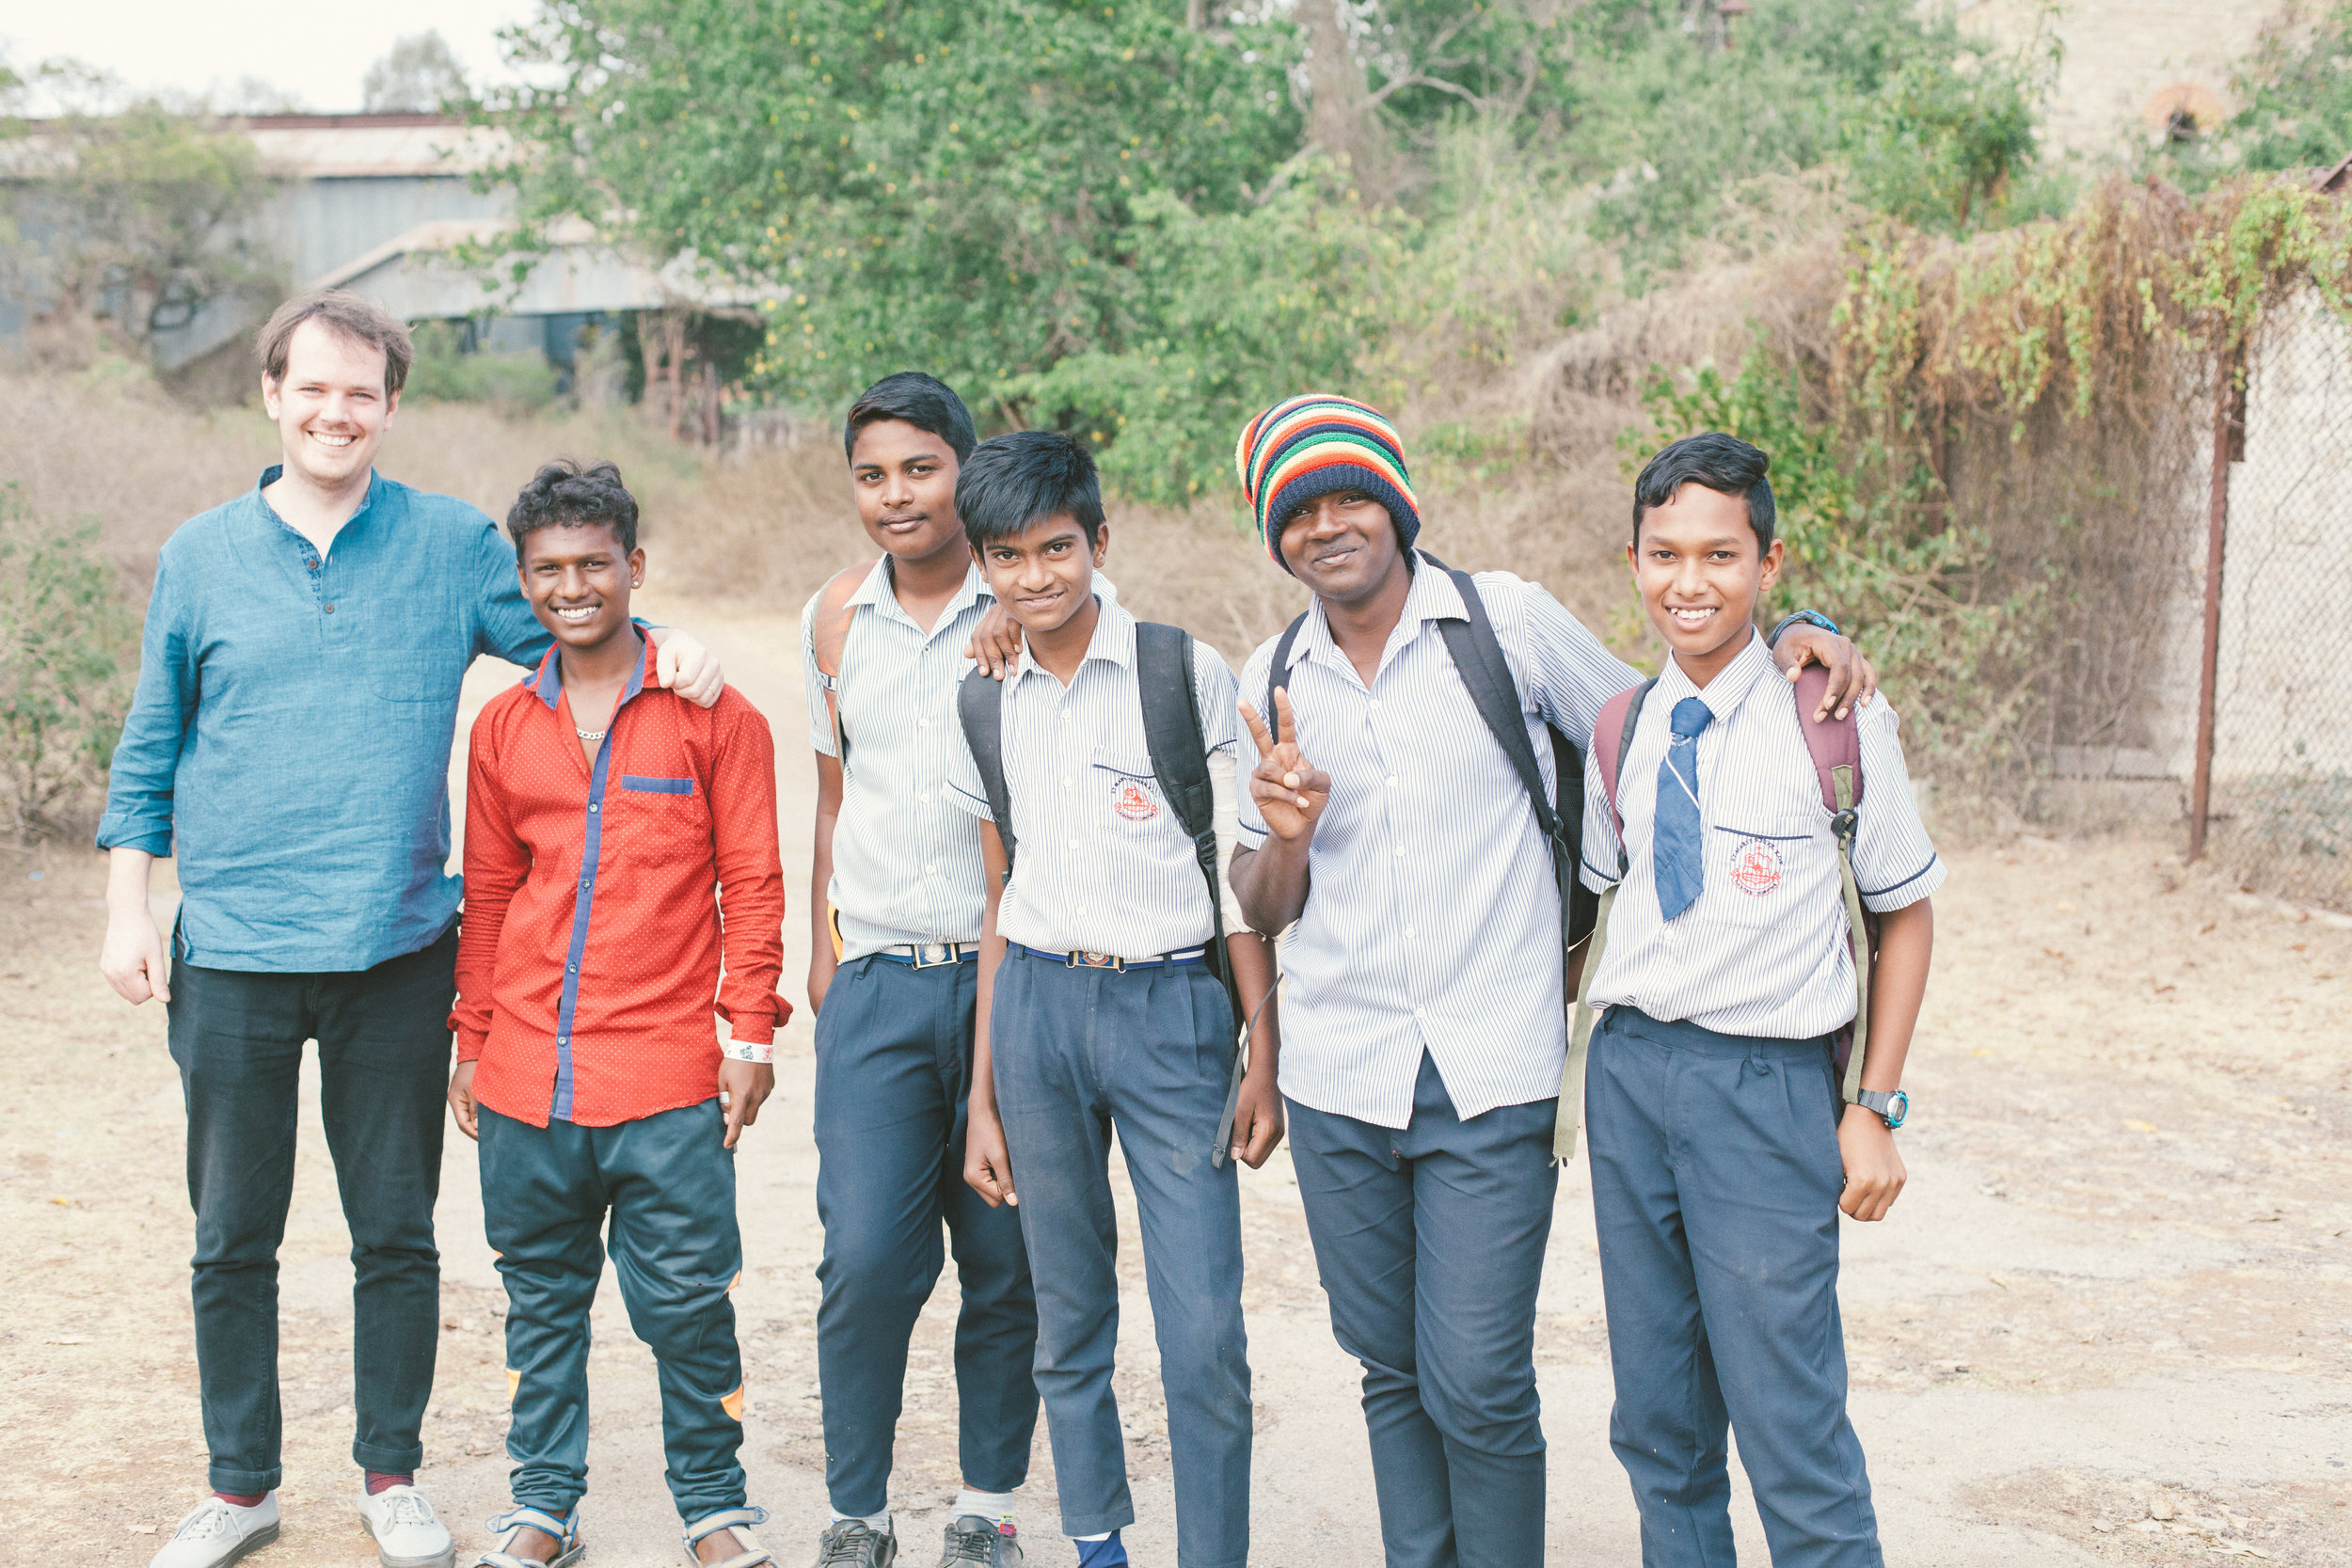 KGF school kids 1.jpg